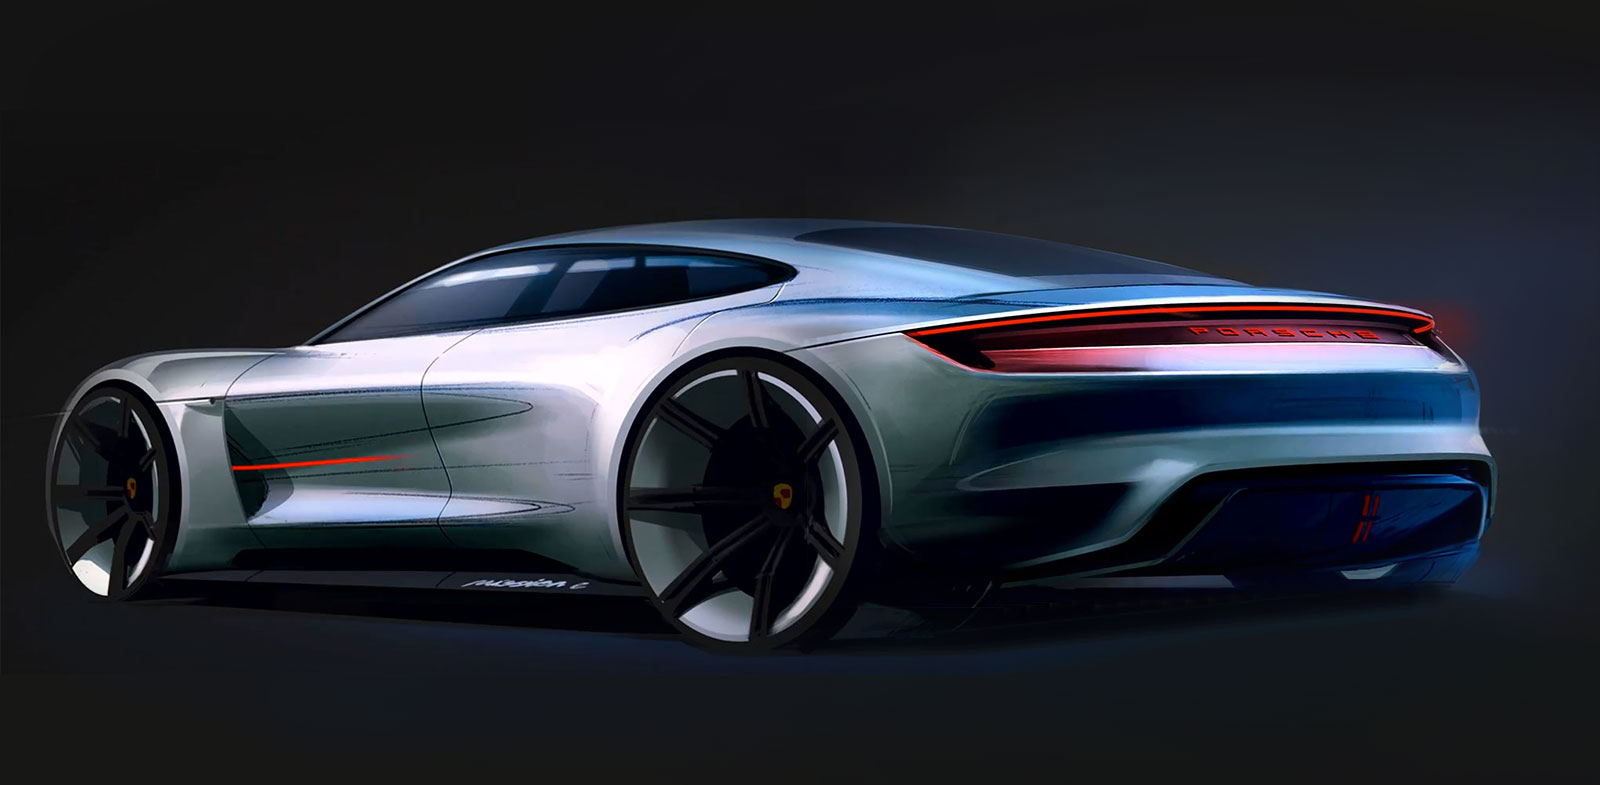 Porsche Mission E Concept Design Sketch - Car Body Design